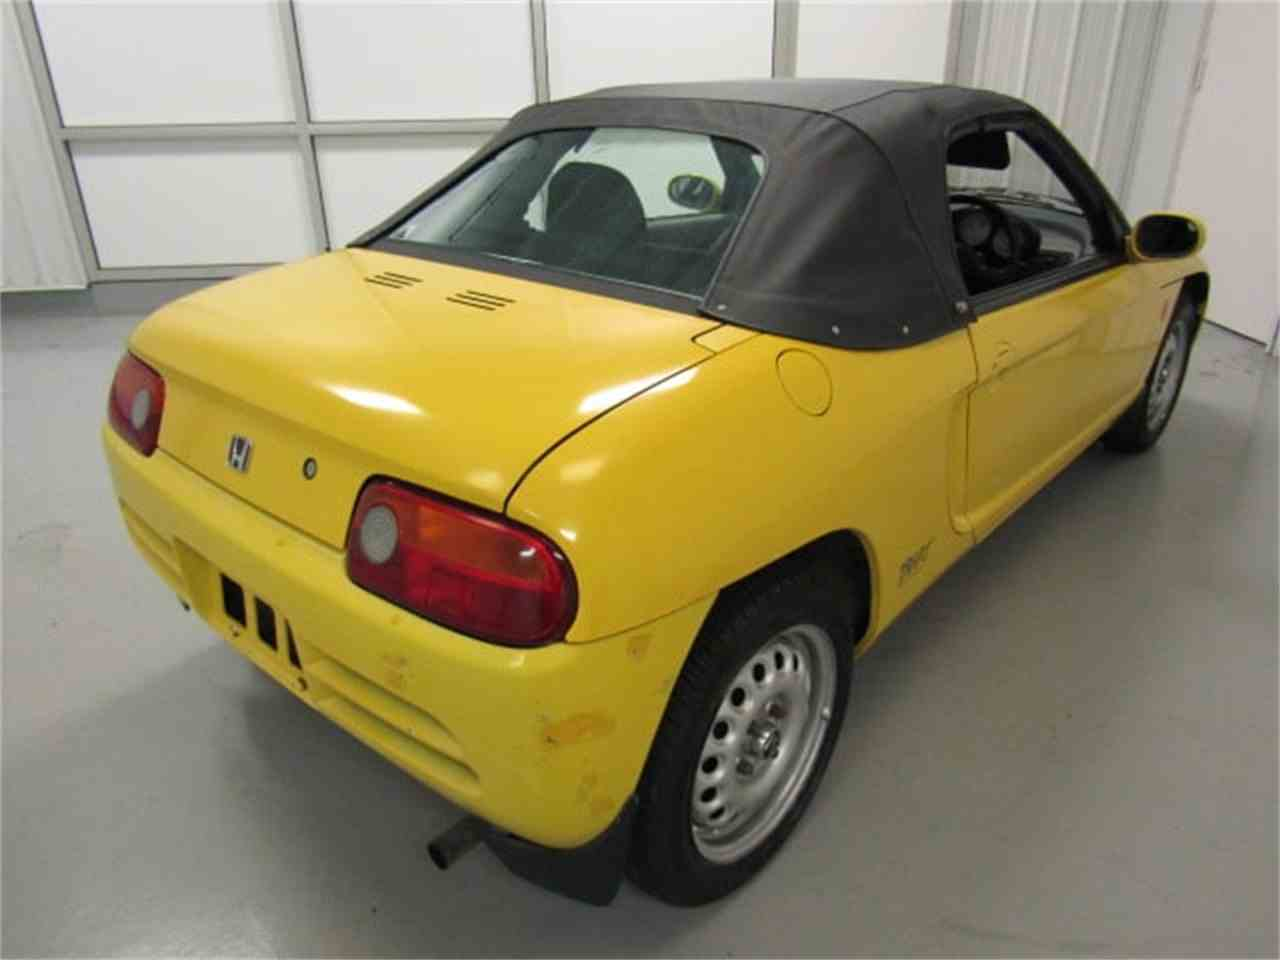 Large Picture of 1991 Honda Beat - $8,989.00 Offered by Duncan Imports & Classic Cars - JL63